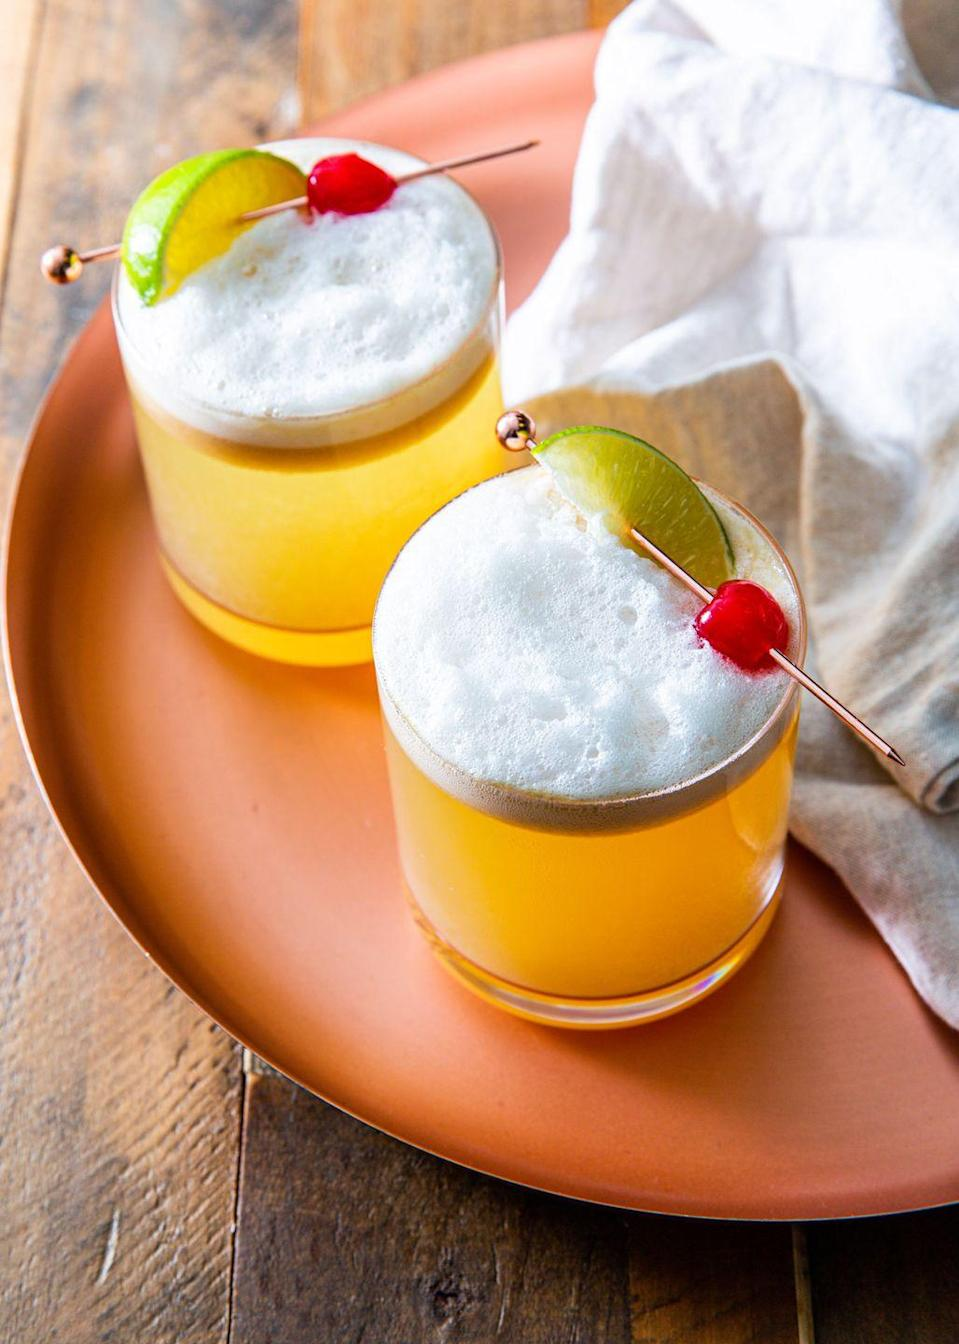 """<p>Ginger adds a spicy kick to the traditional whiskey sour. <br></p><p>Get the recipe from <a href=""""https://www.delish.com/cooking/recipe-ideas/a30121624/ginger-lime-whiskey-sour-recipe/"""" rel=""""nofollow noopener"""" target=""""_blank"""" data-ylk=""""slk:Delish"""" class=""""link rapid-noclick-resp"""">Delish</a>.</p>"""